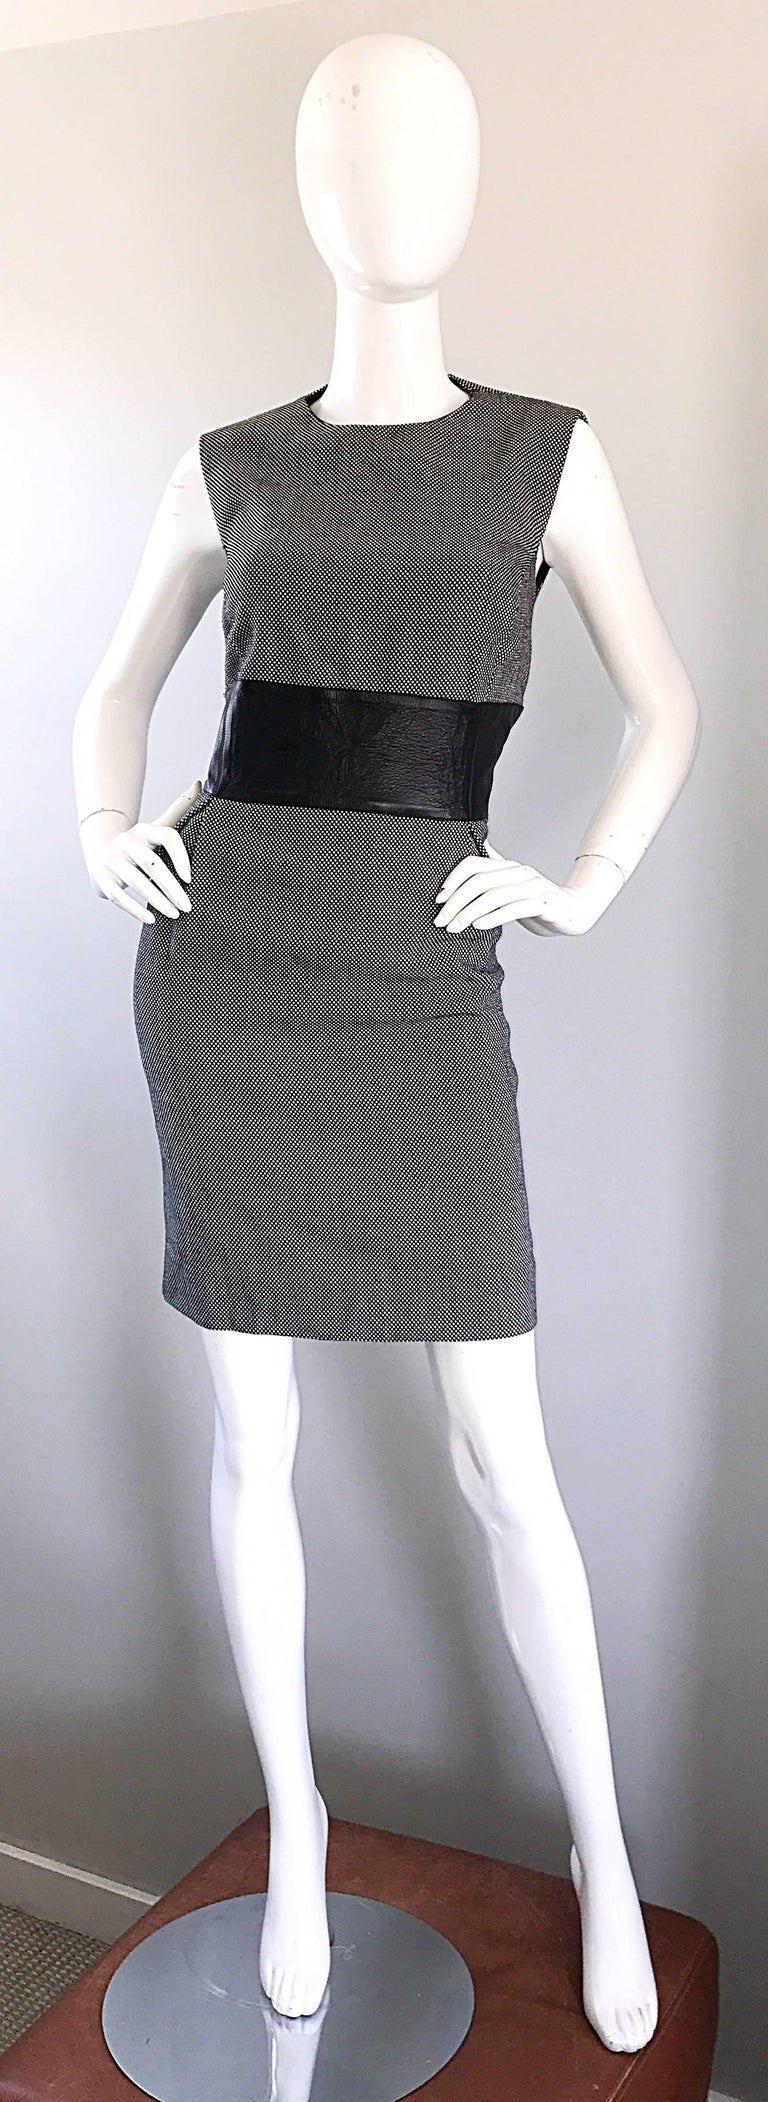 New Michael Kors Collection Size 14 Black and White Wool + Leather Classic Dress 2